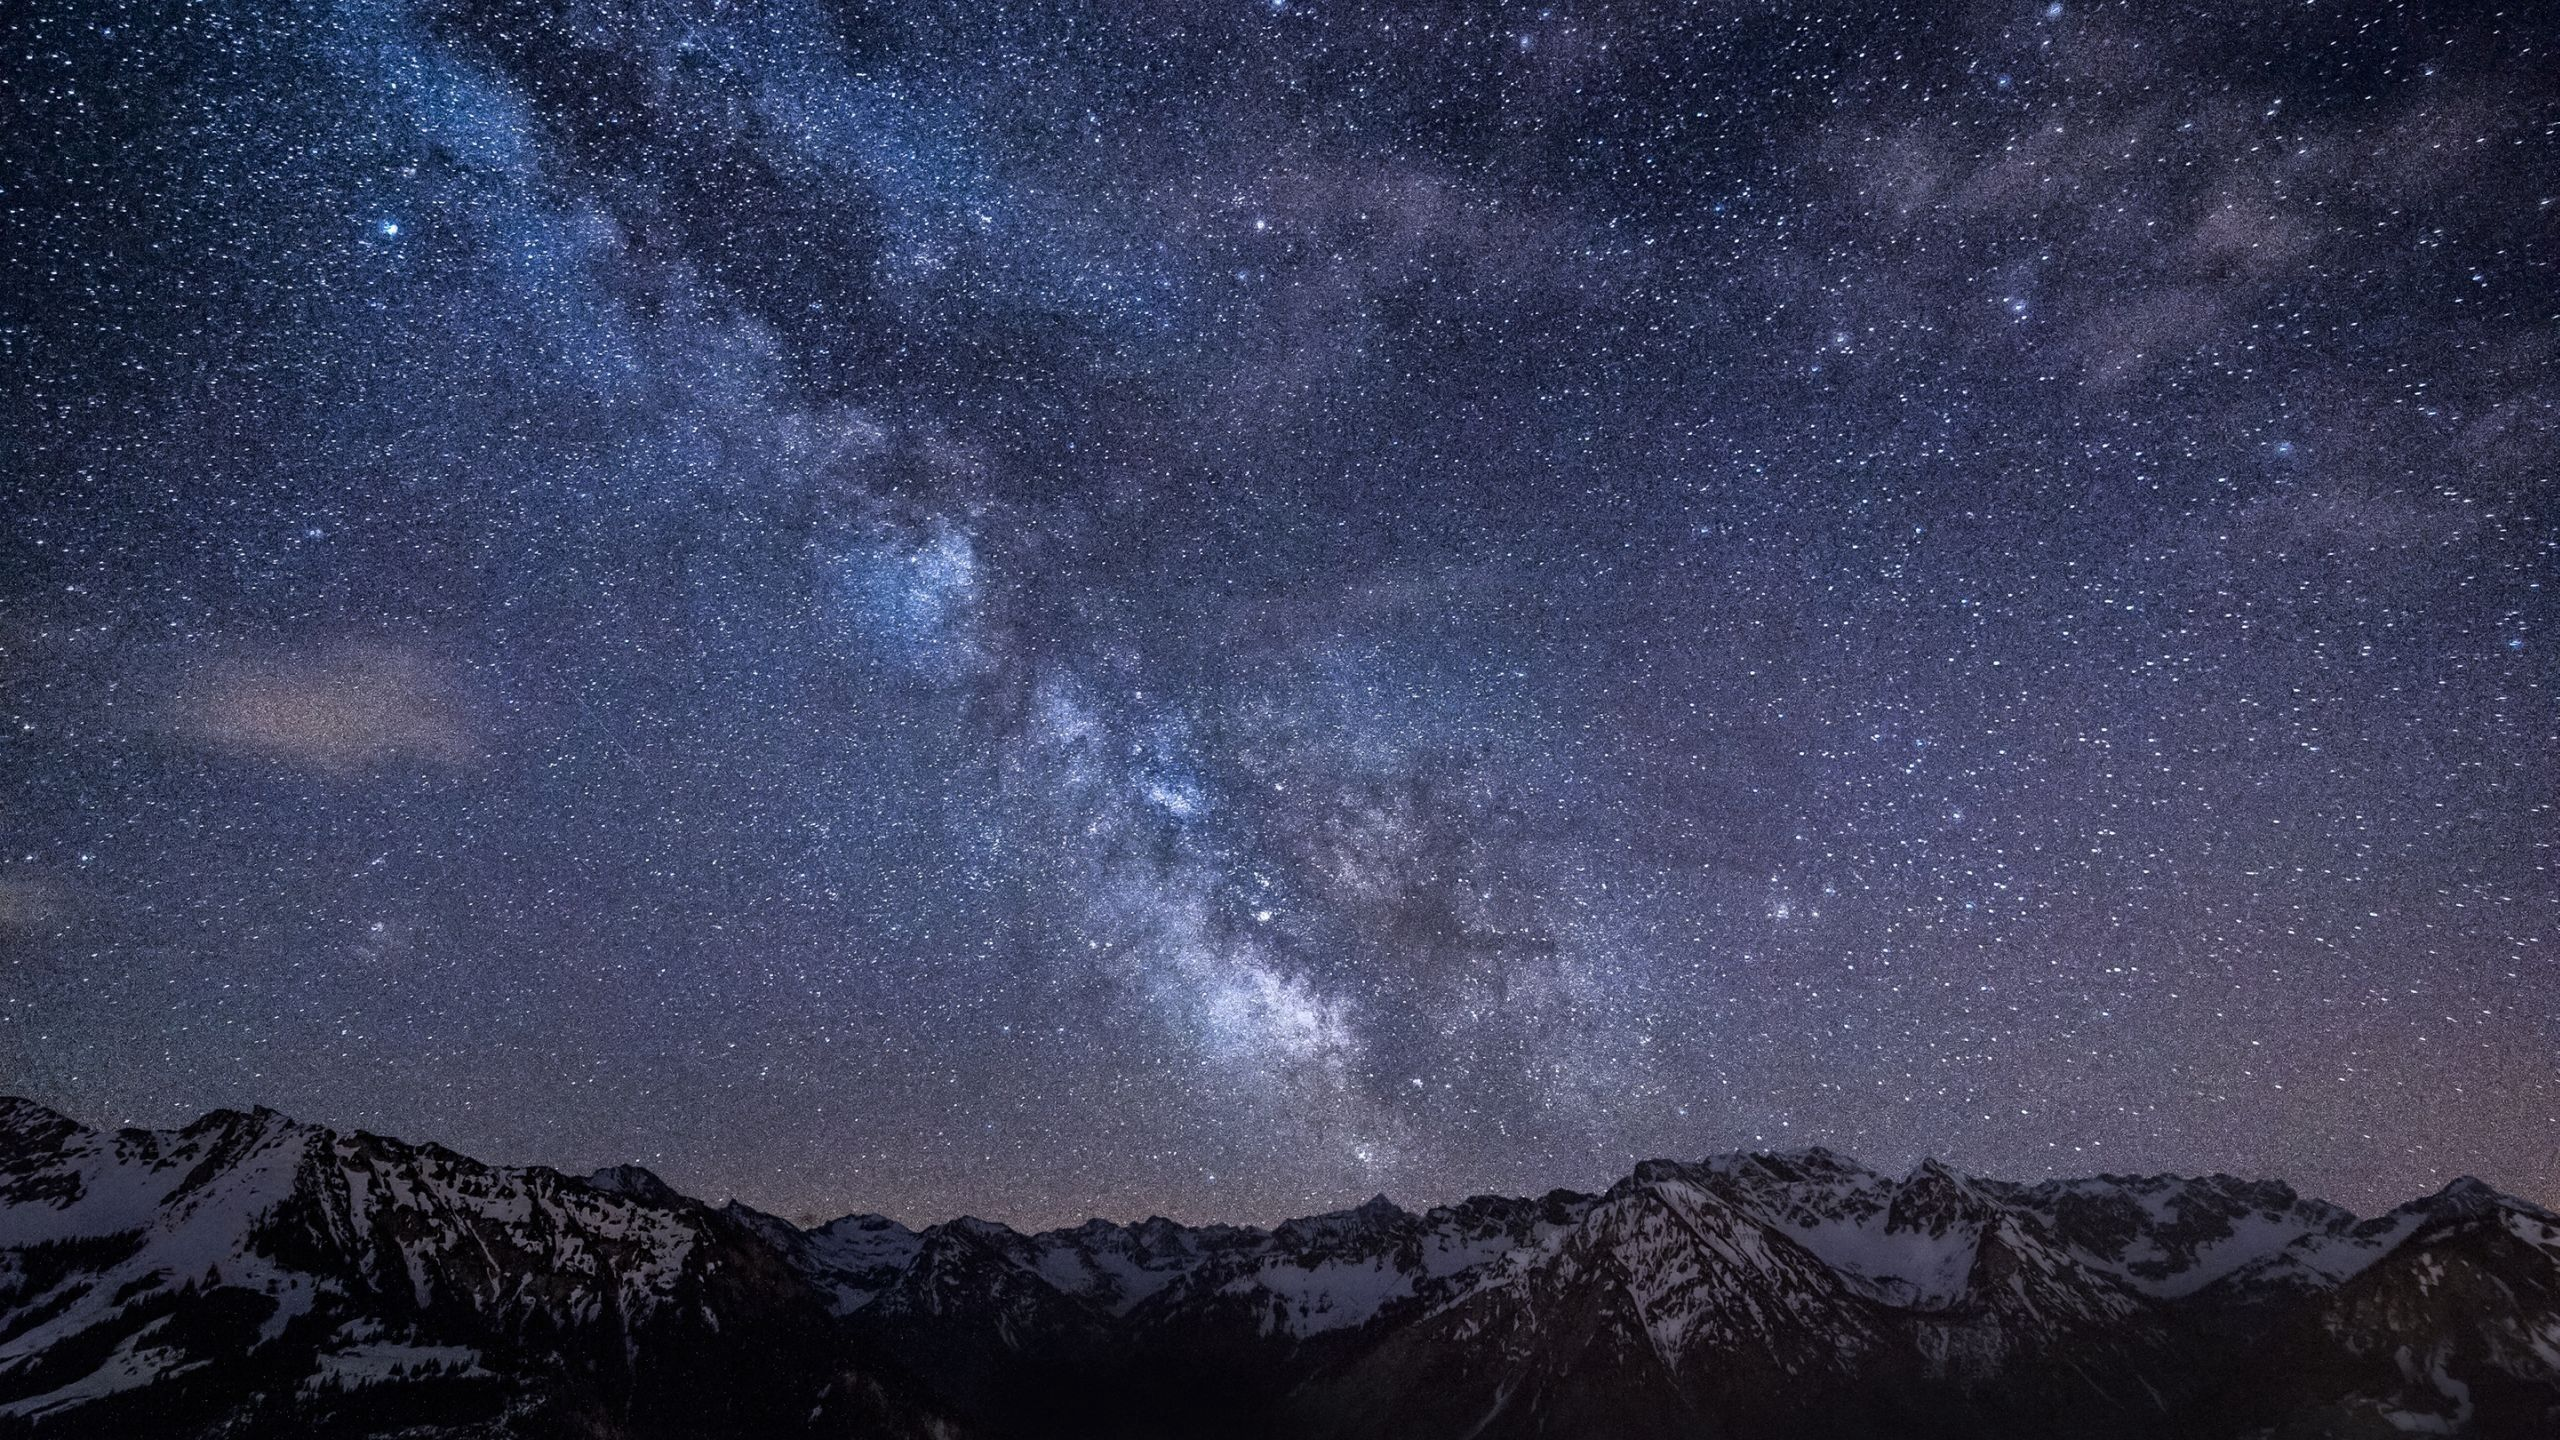 Mountain Night Sky Wallpapers   Top Mountain Night Sky 2560x1440